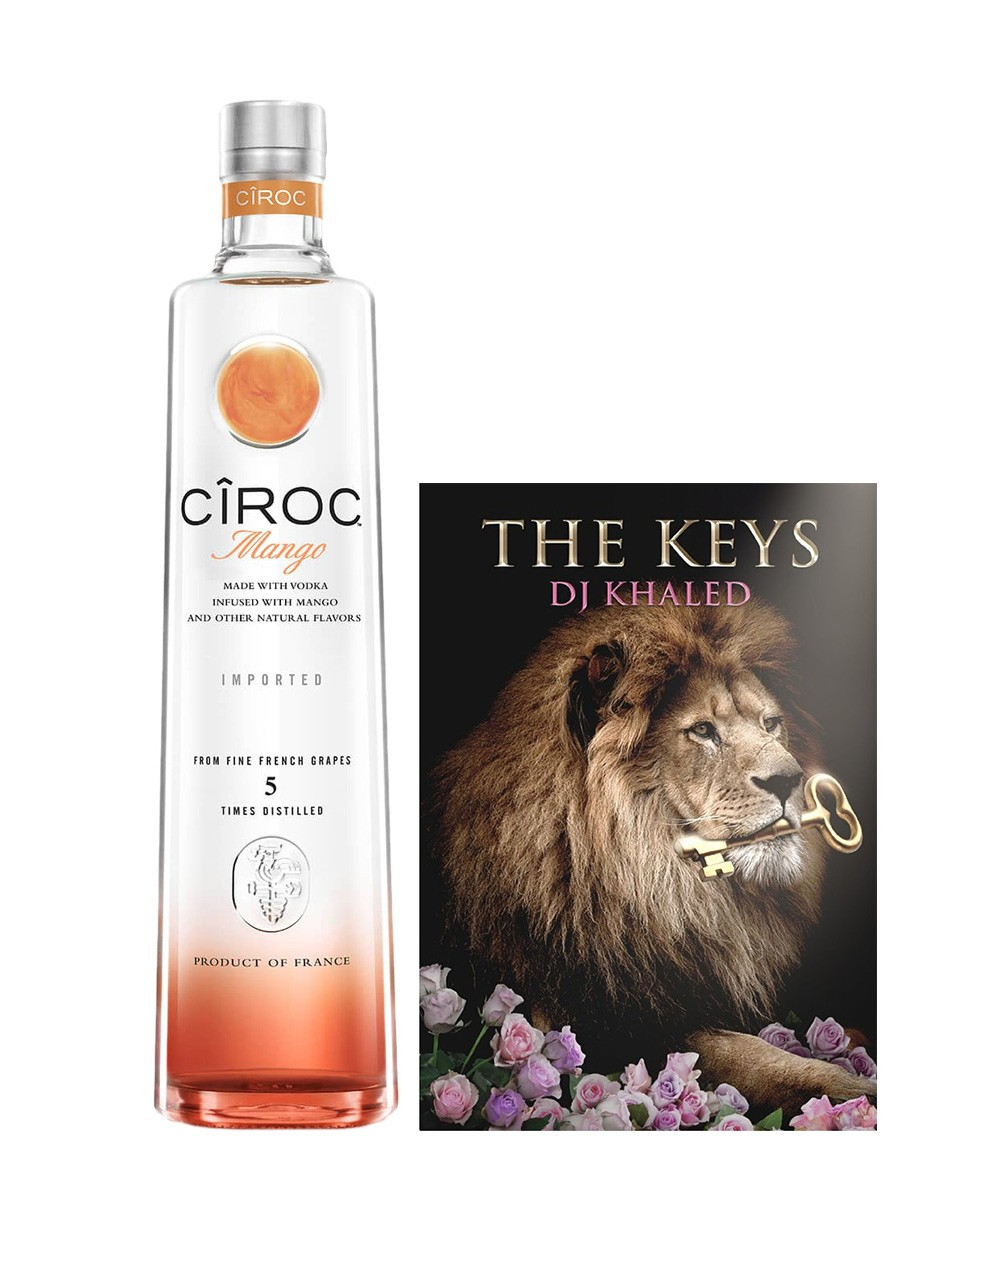 ... Ultra Premium Vodka partner with Snapchat sensation, business mogul and recording artist DJ Khaled to launch a limited edition CÎROC Mango gift set.